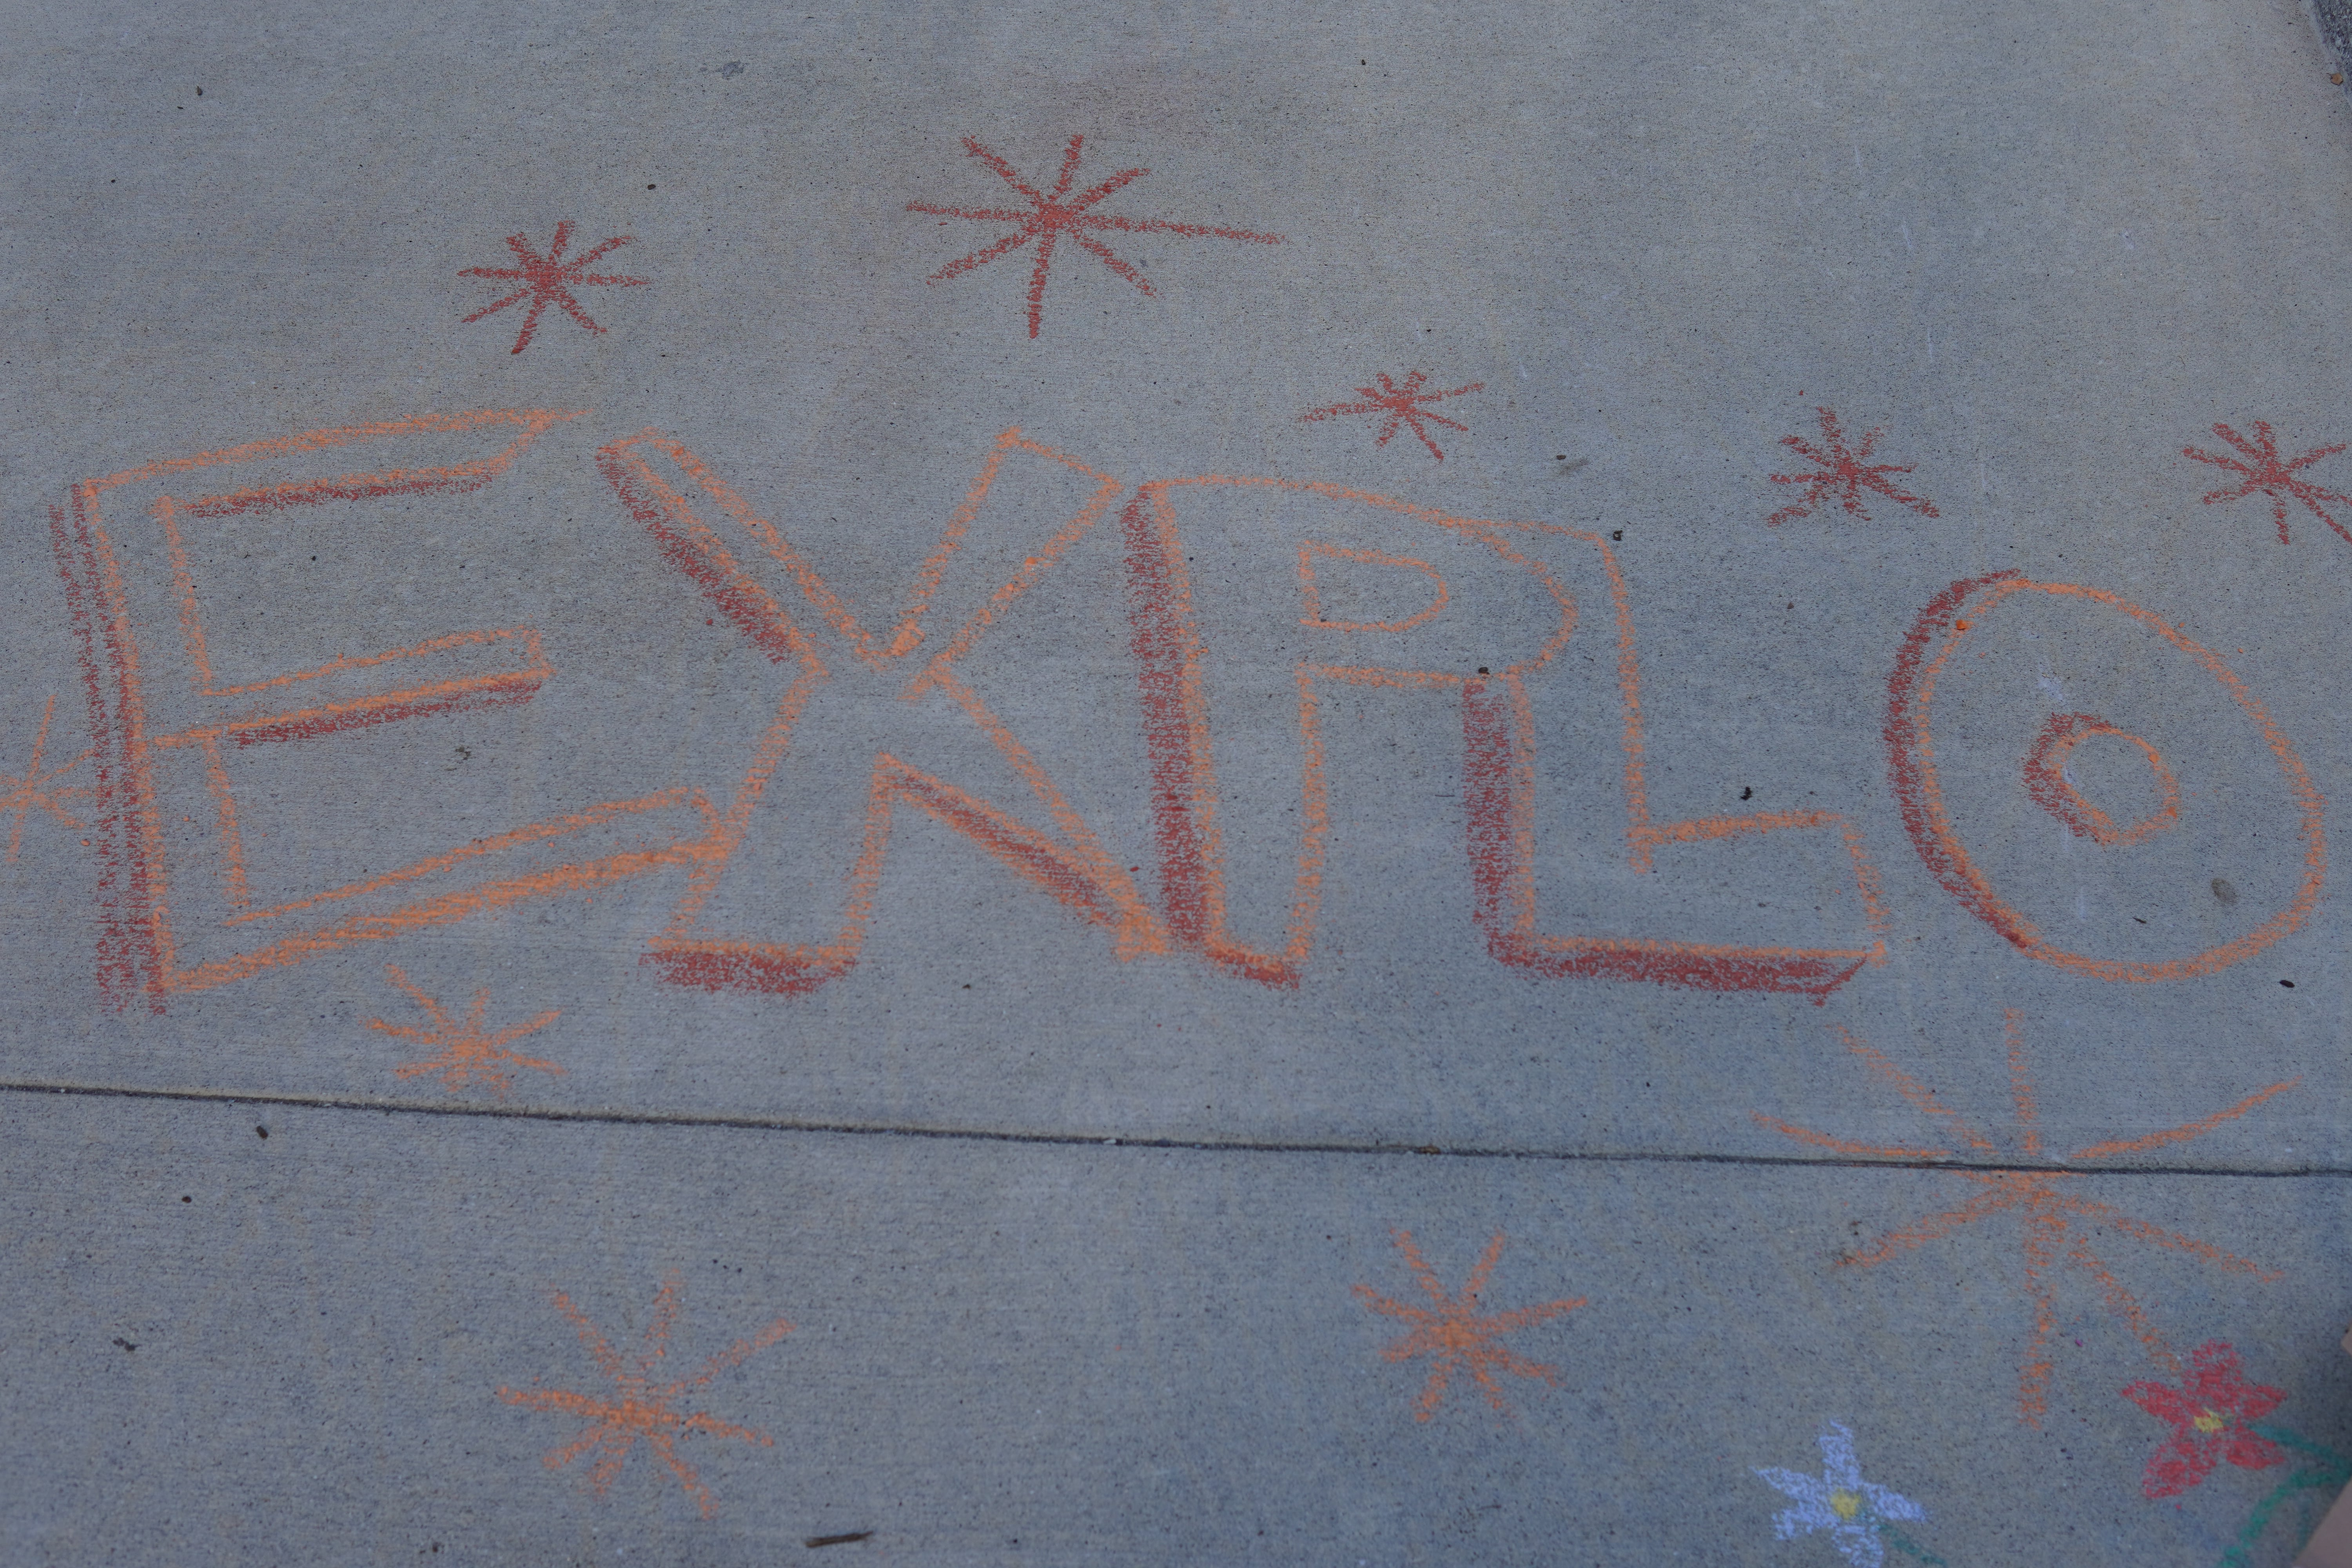 Red and orange chalk on the sidewalk spells out EXPLO